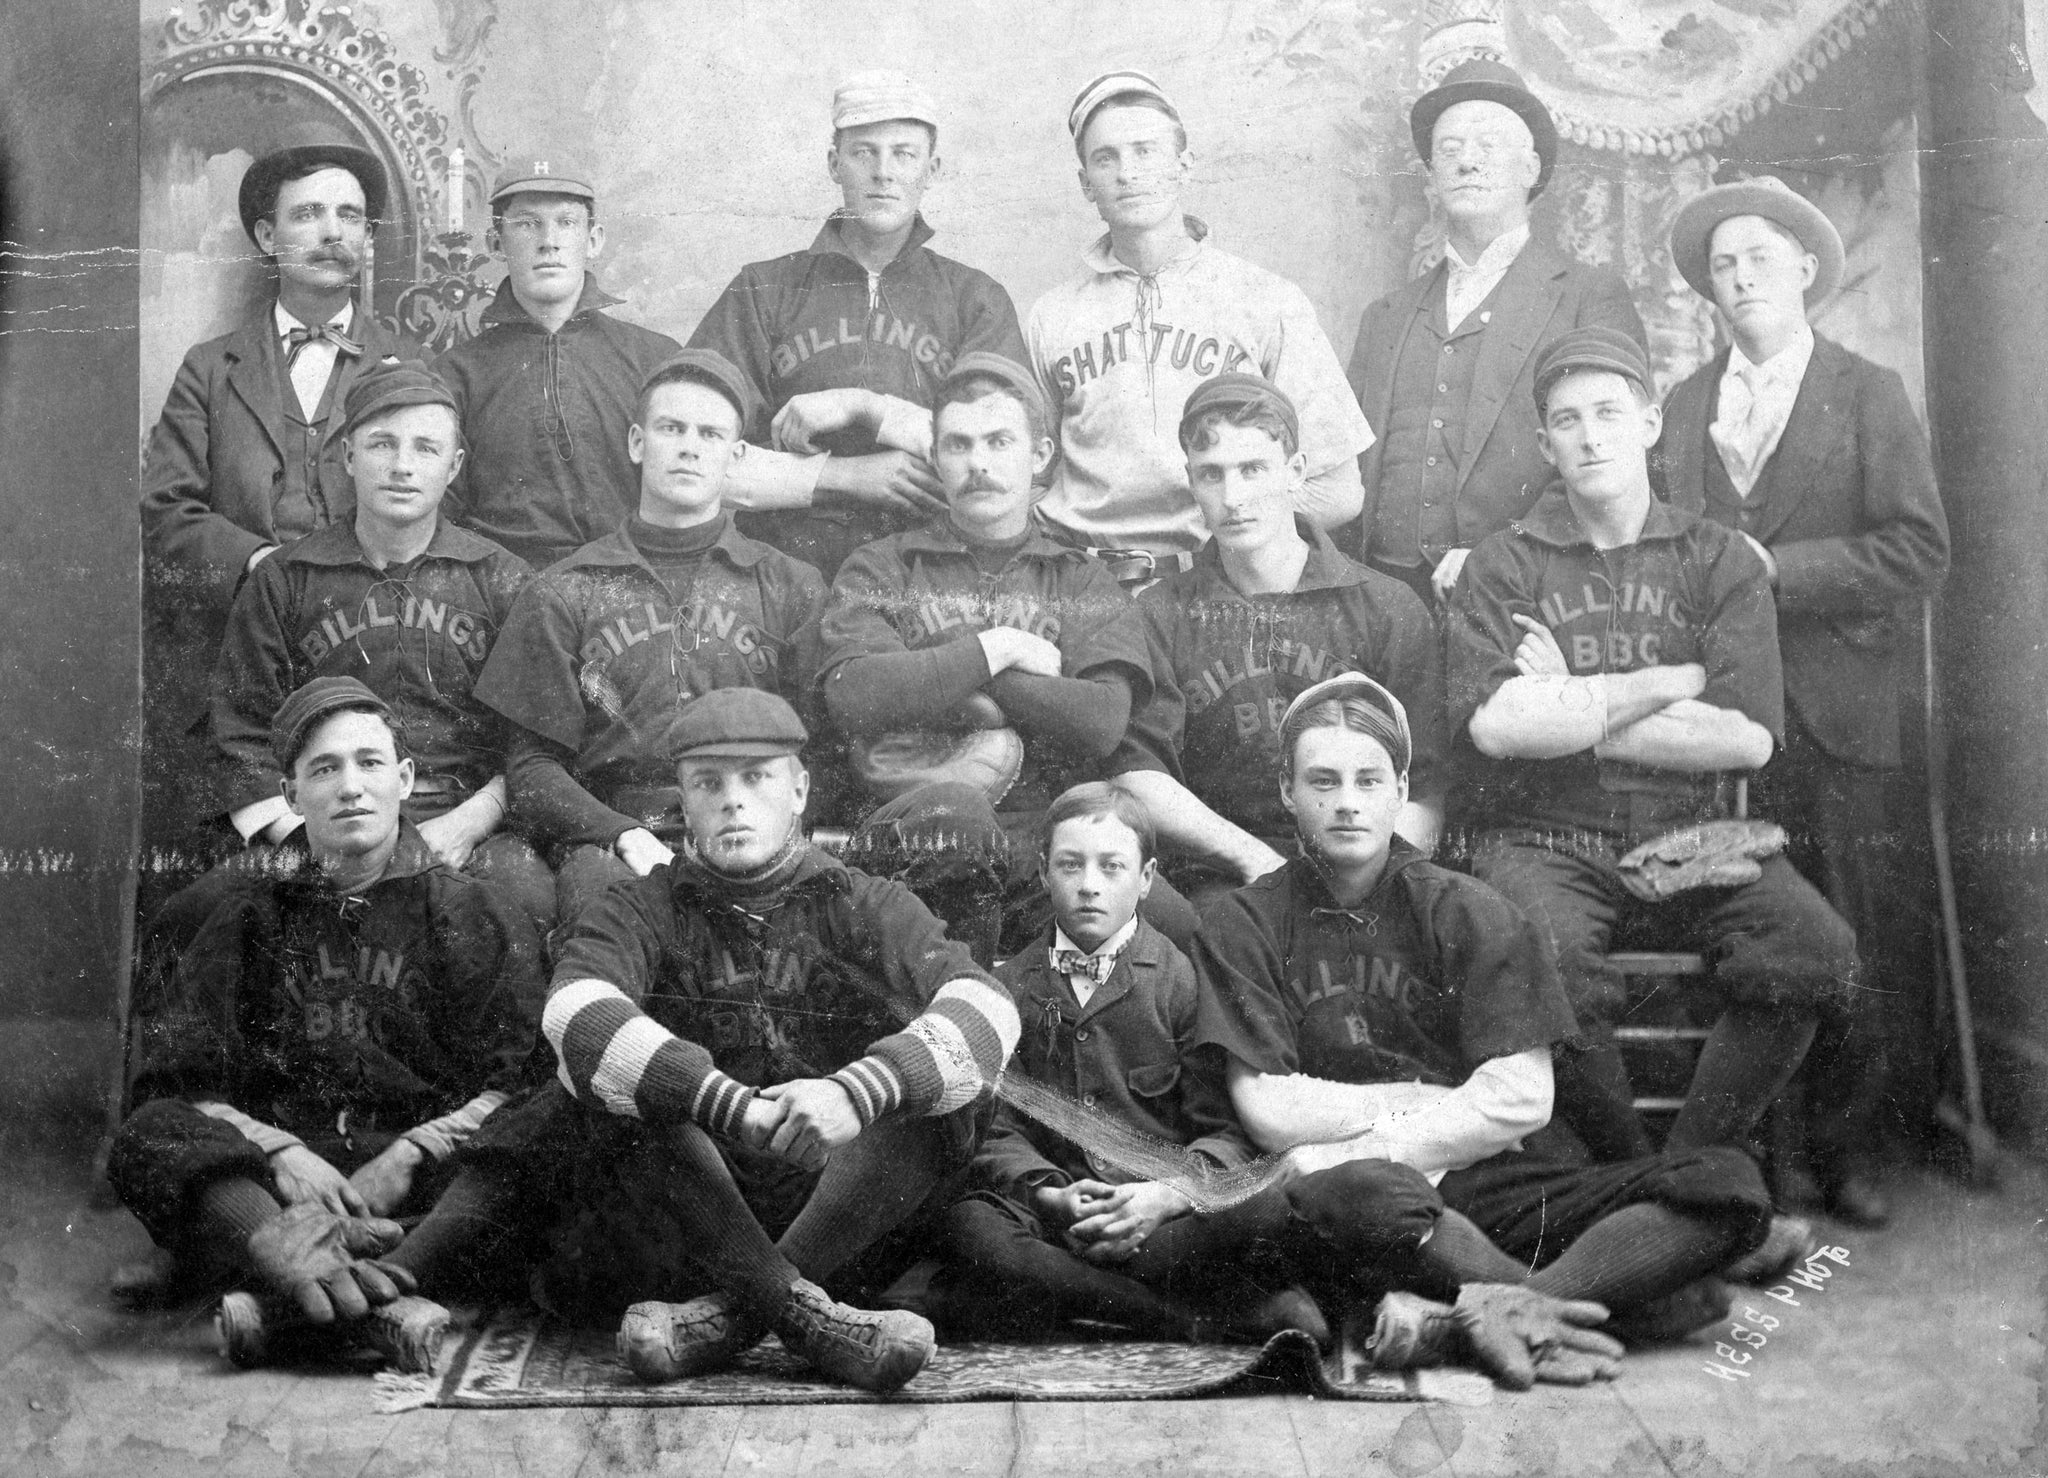 "Billings baseball club, 1899. Back row, third from left is Roger ""Peaceful Valley"" Denzer, who had pitched in the Major Leagues for the Chicago Colts in 1897 and would make it back with the New York Giants in 1901. In Billings he was infamous for allowing a home run in the bottom of the ninth inning of the 1900 championship game against Helena. -- Courtesy Western Heritage Center"